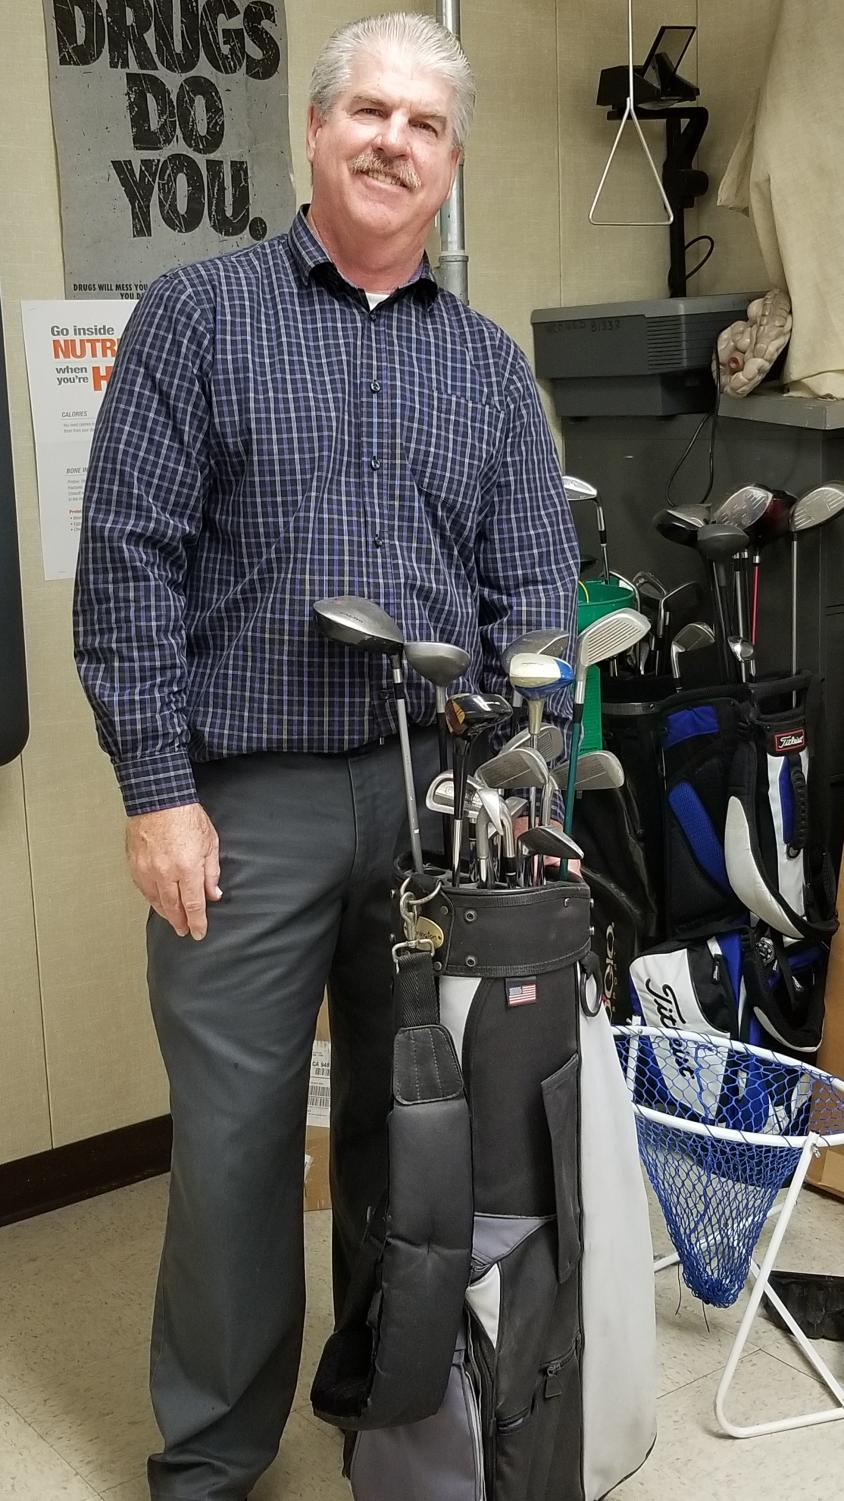 Dan O'Shea, coach of the Pinole Valley High School golf team.